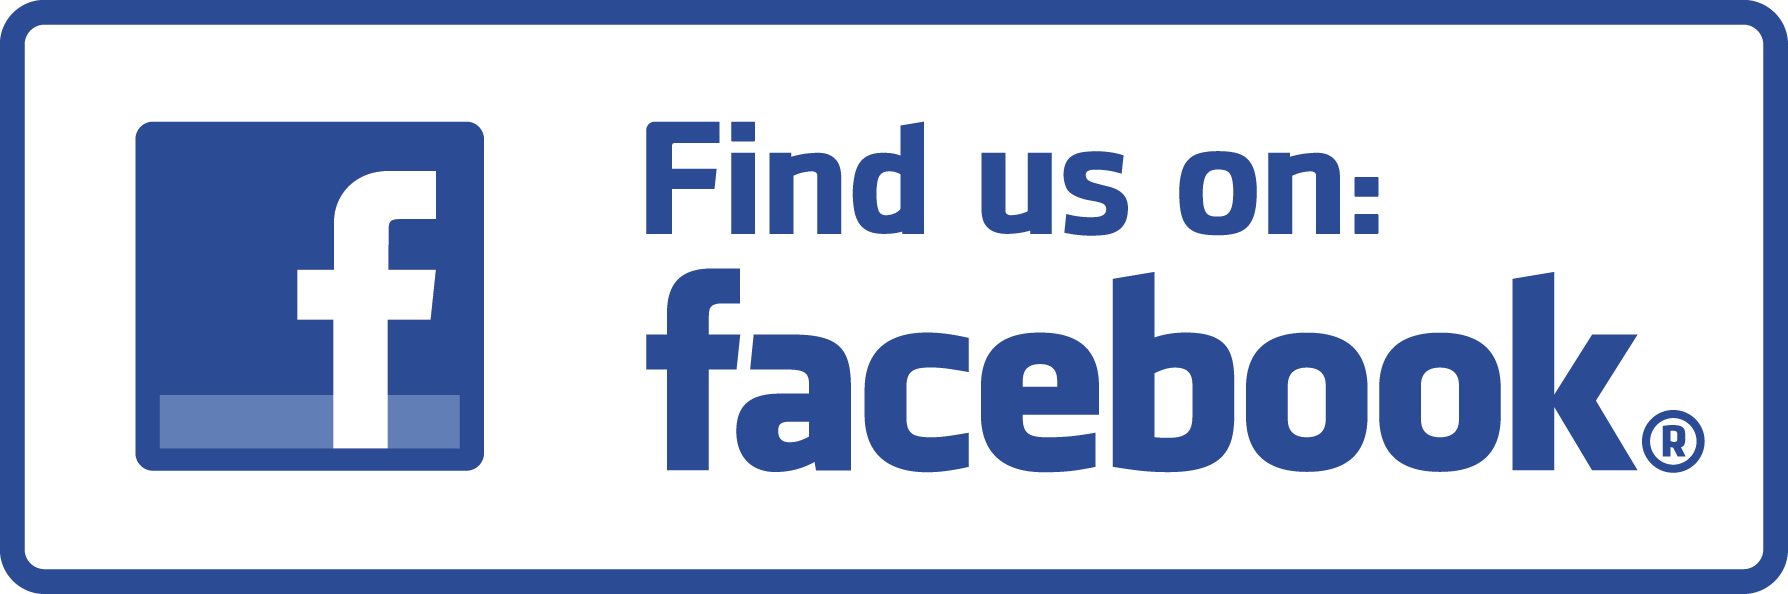 Find us on Facebook at http://www.Facebook.com/DucksAndClucks